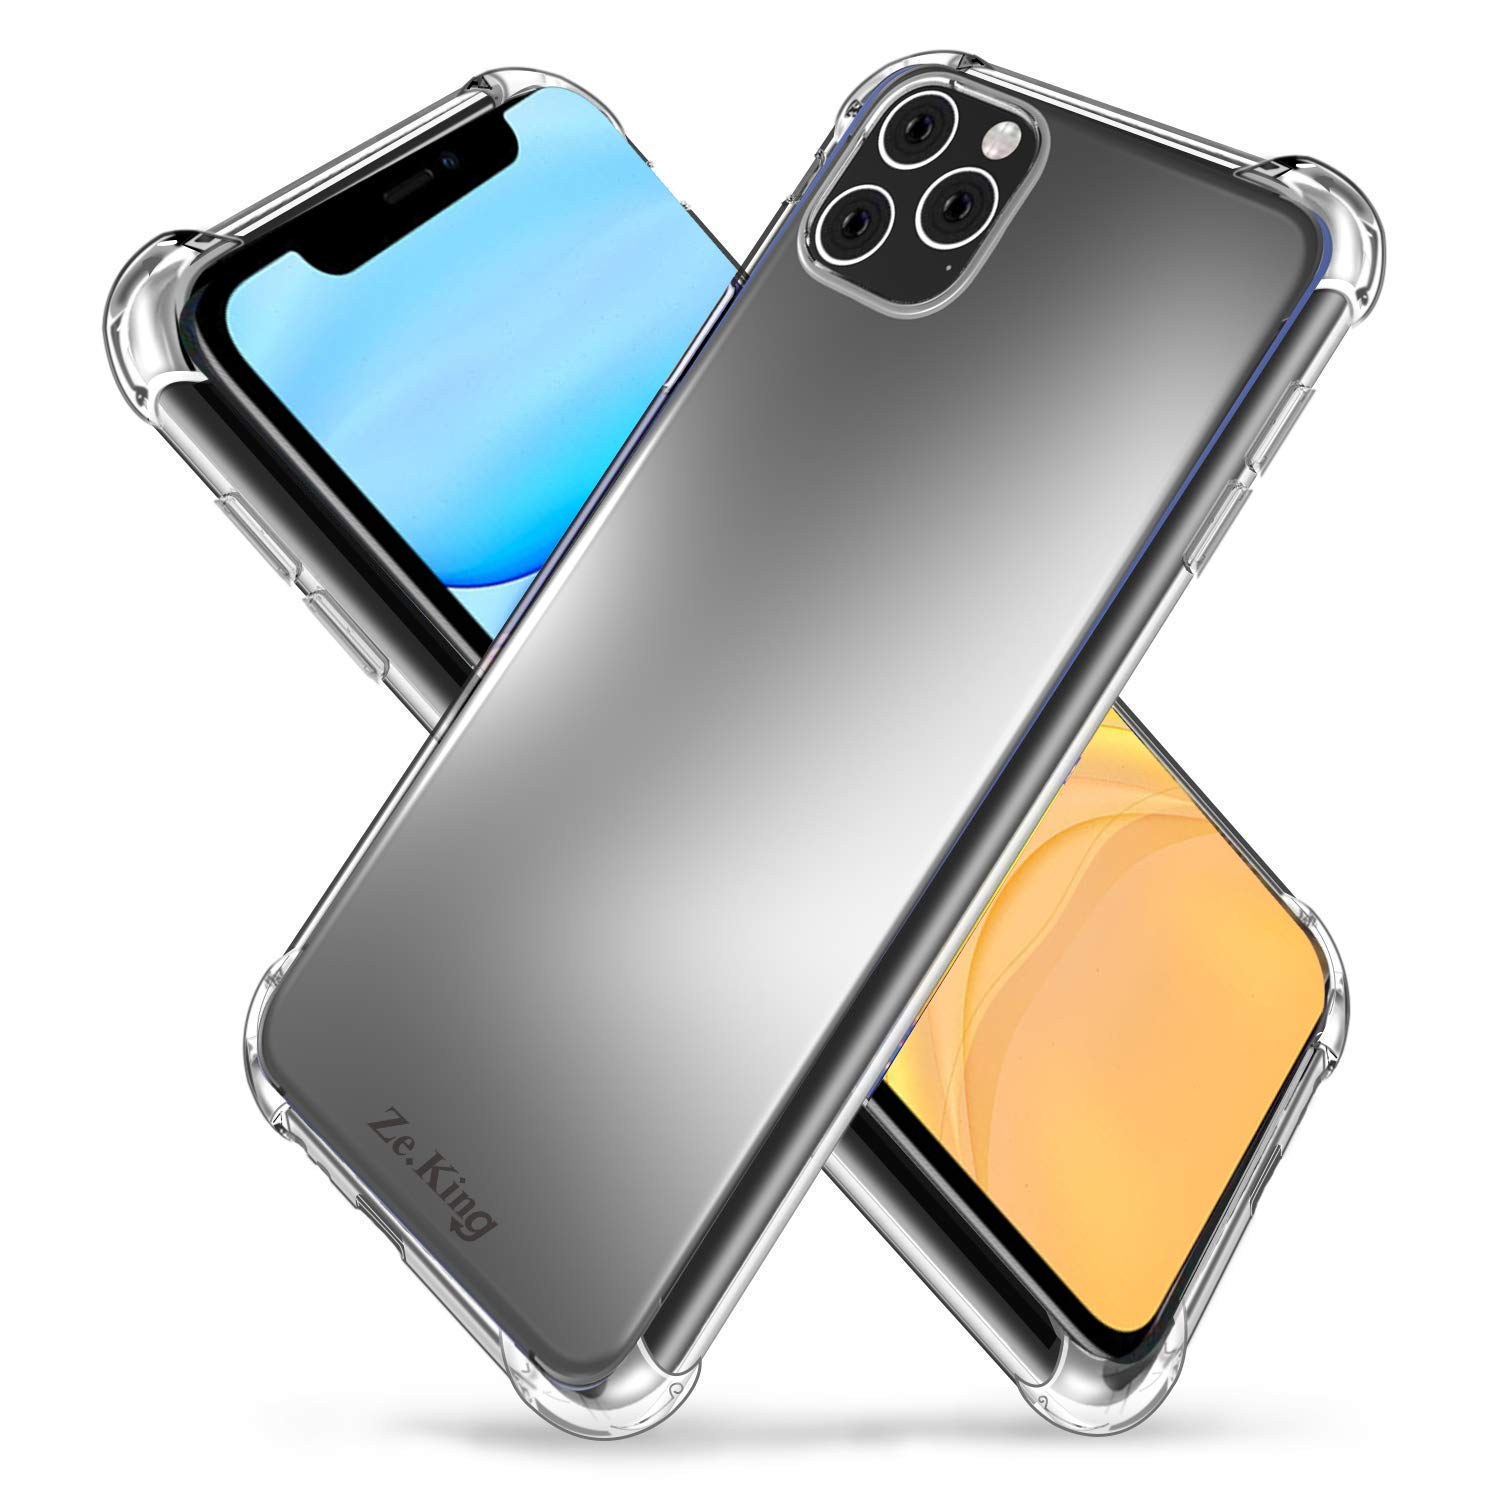 ZeKing iPhone 11 6.1'' Case Crystal Clear Soft Silicone TPU with Four Corner Bumper Protective Case Cover for iPhone 11 6.1'' (2019)(Transparent)